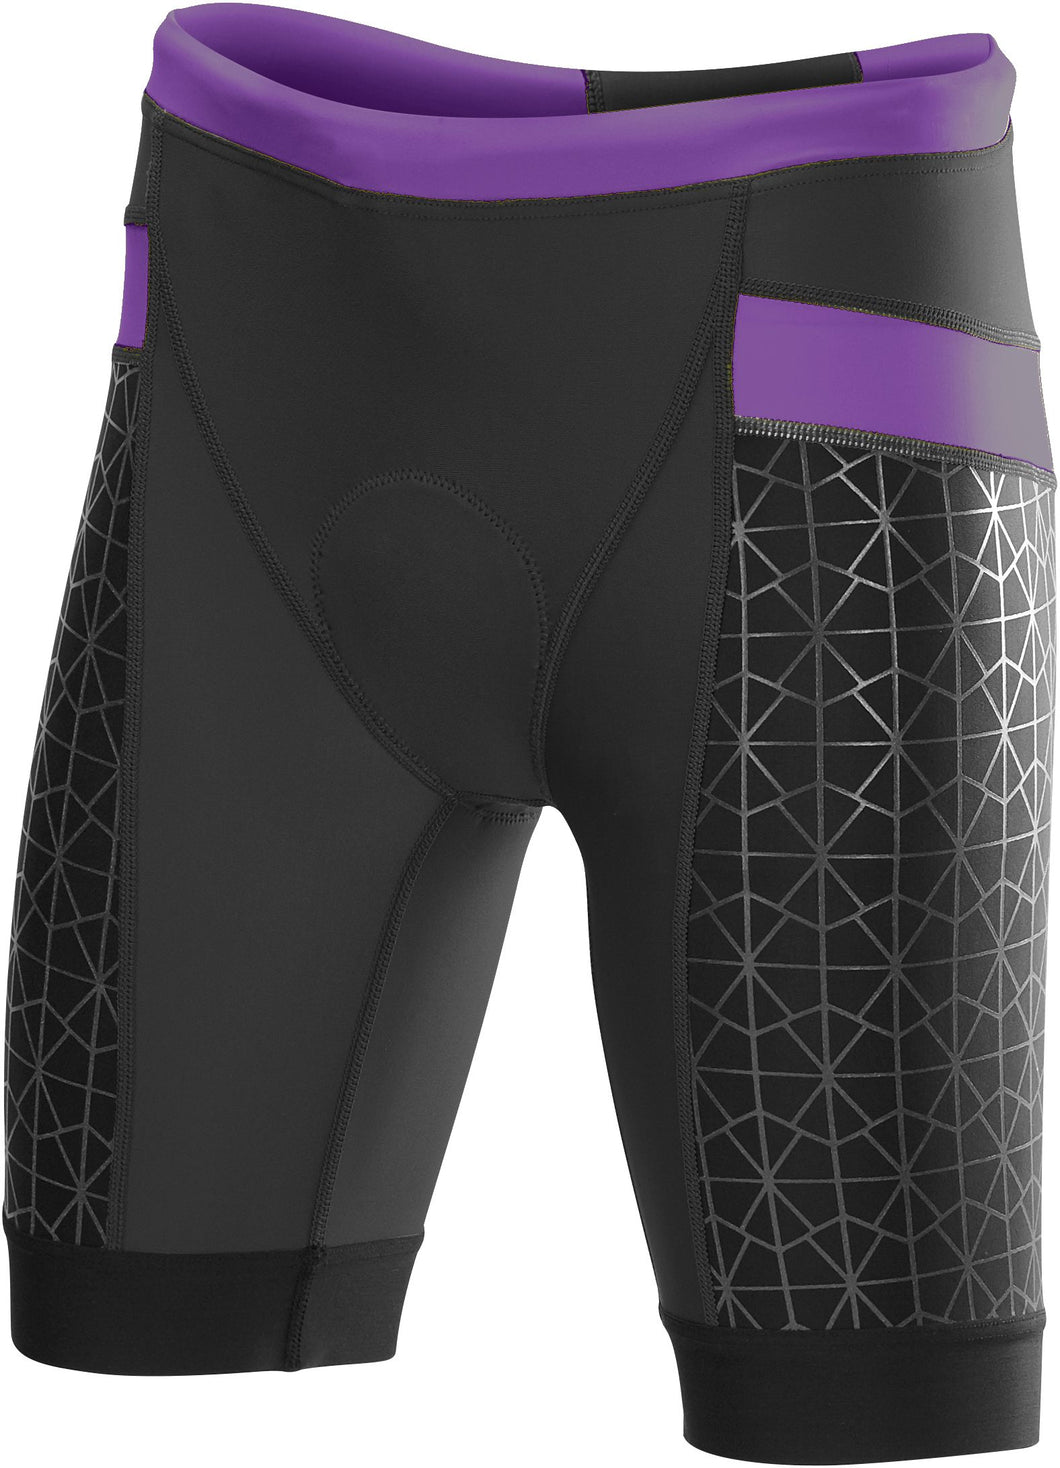 TYR WOMEN'S BLACK/PURPLE COMPETITOR 8